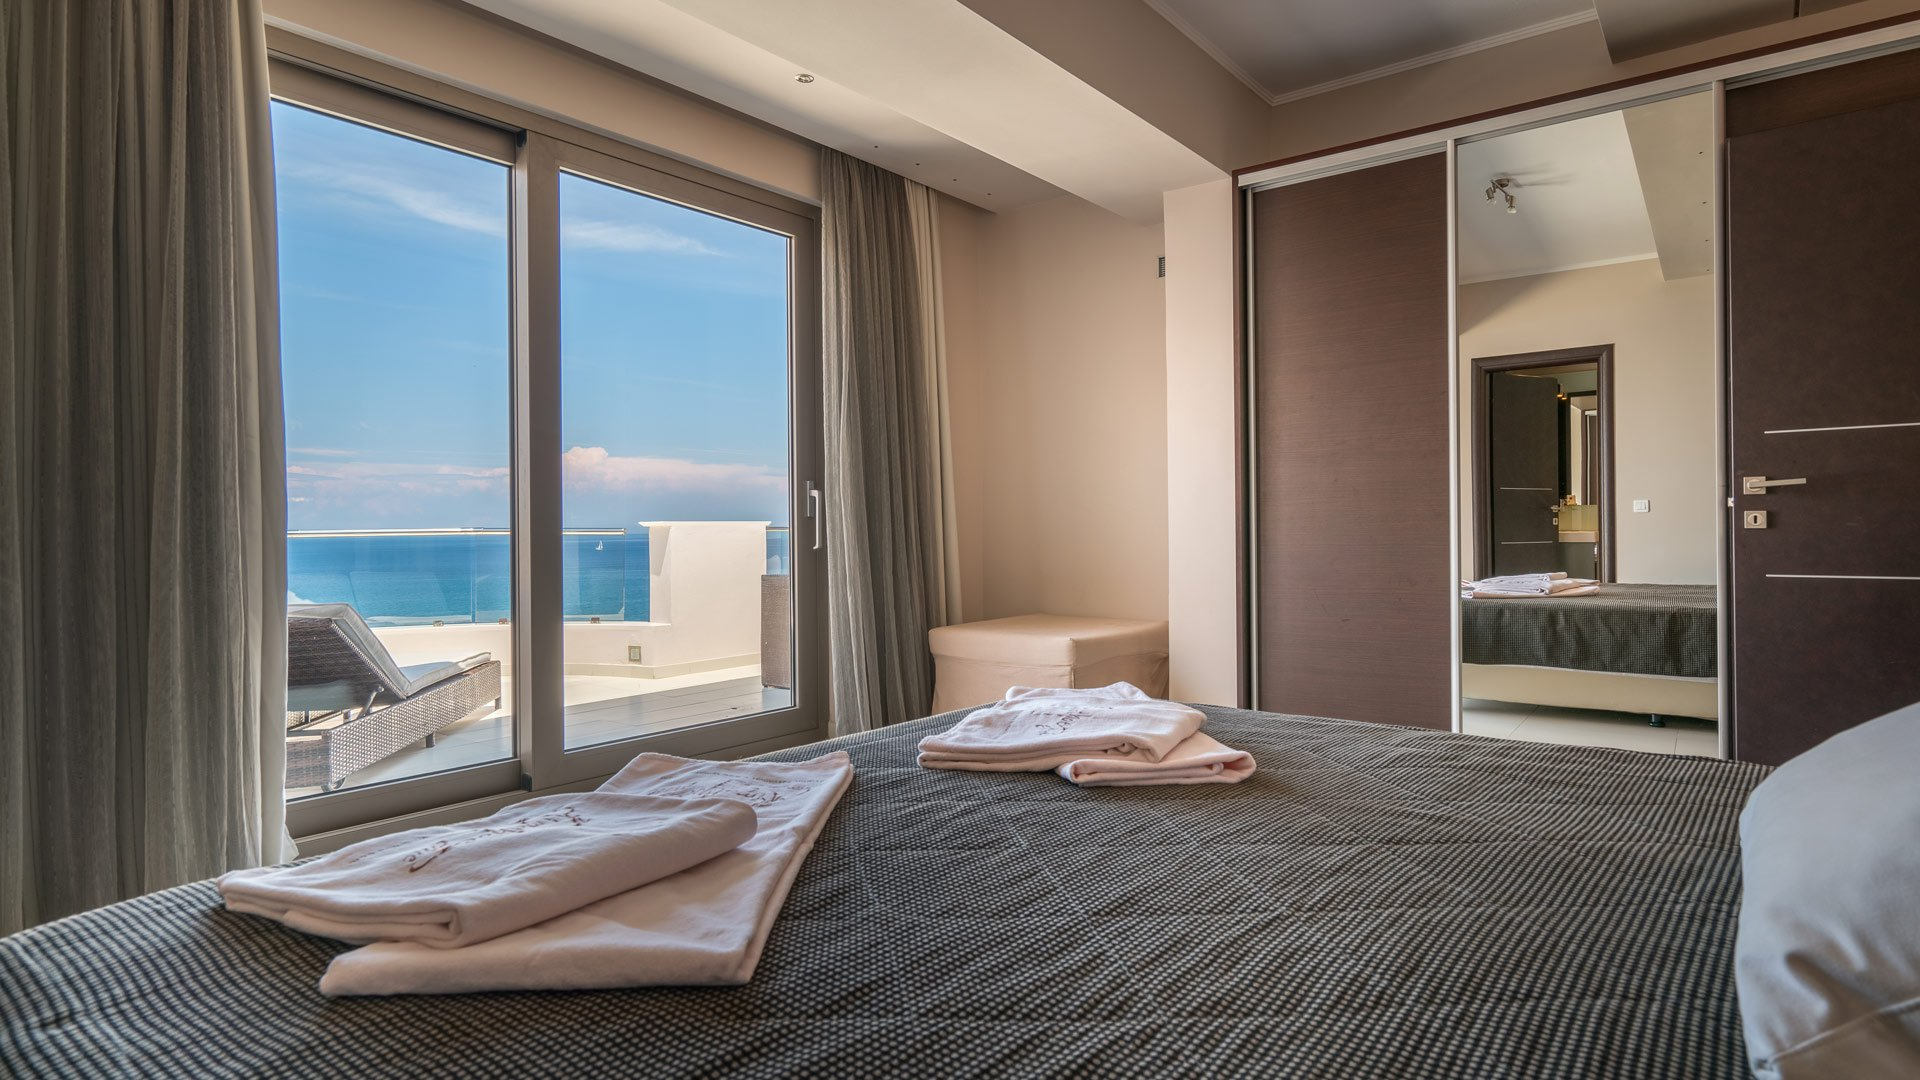 The bedroom and its view of the Ionian Sea that Kymothoe Elite Suites offers in Zakynthos